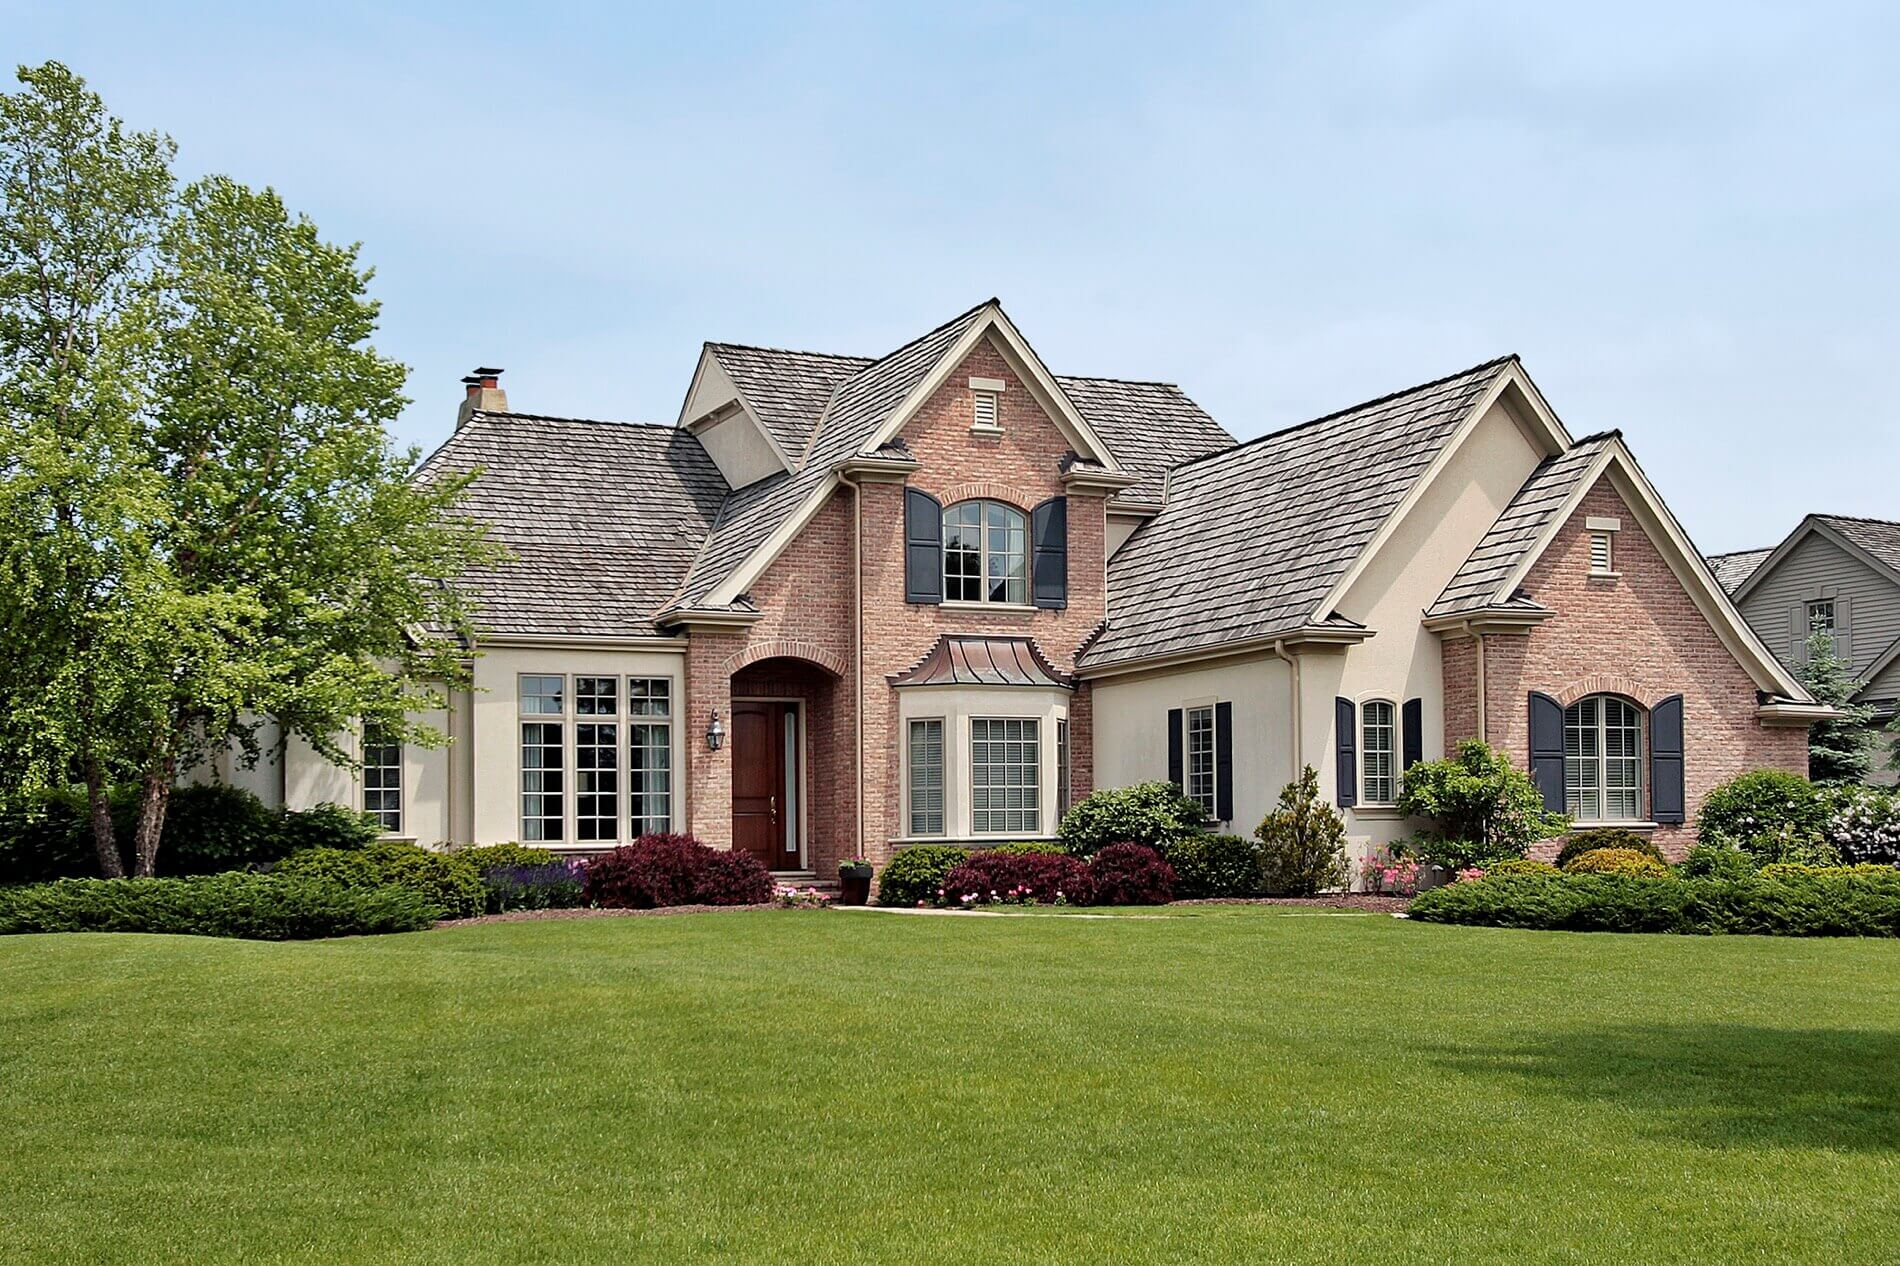 AHI, Inc. Consulting | Home Inspection Services for the Greater  Philadelphia Area